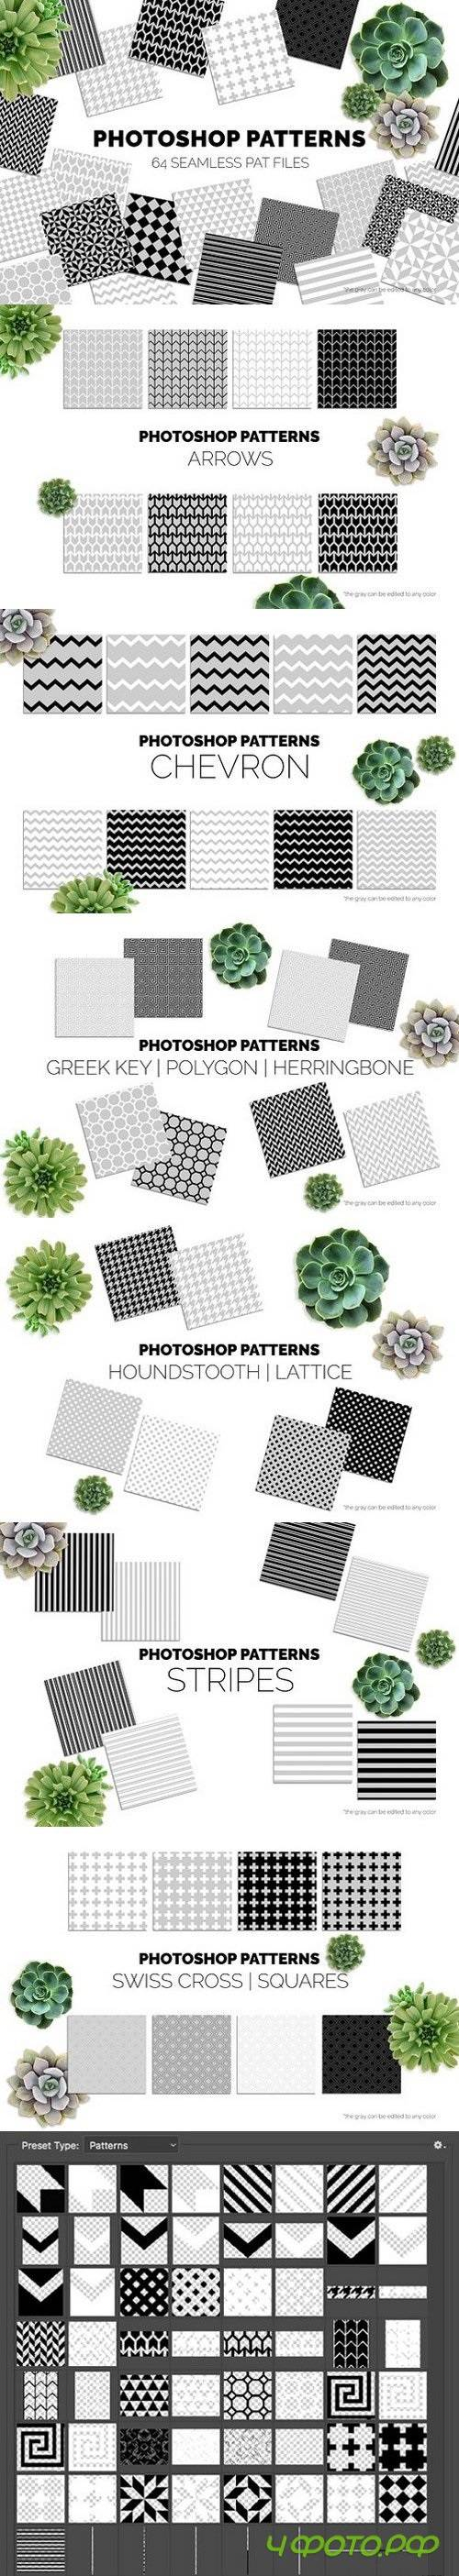 64 Seamless Photoshop Patterns 1697109